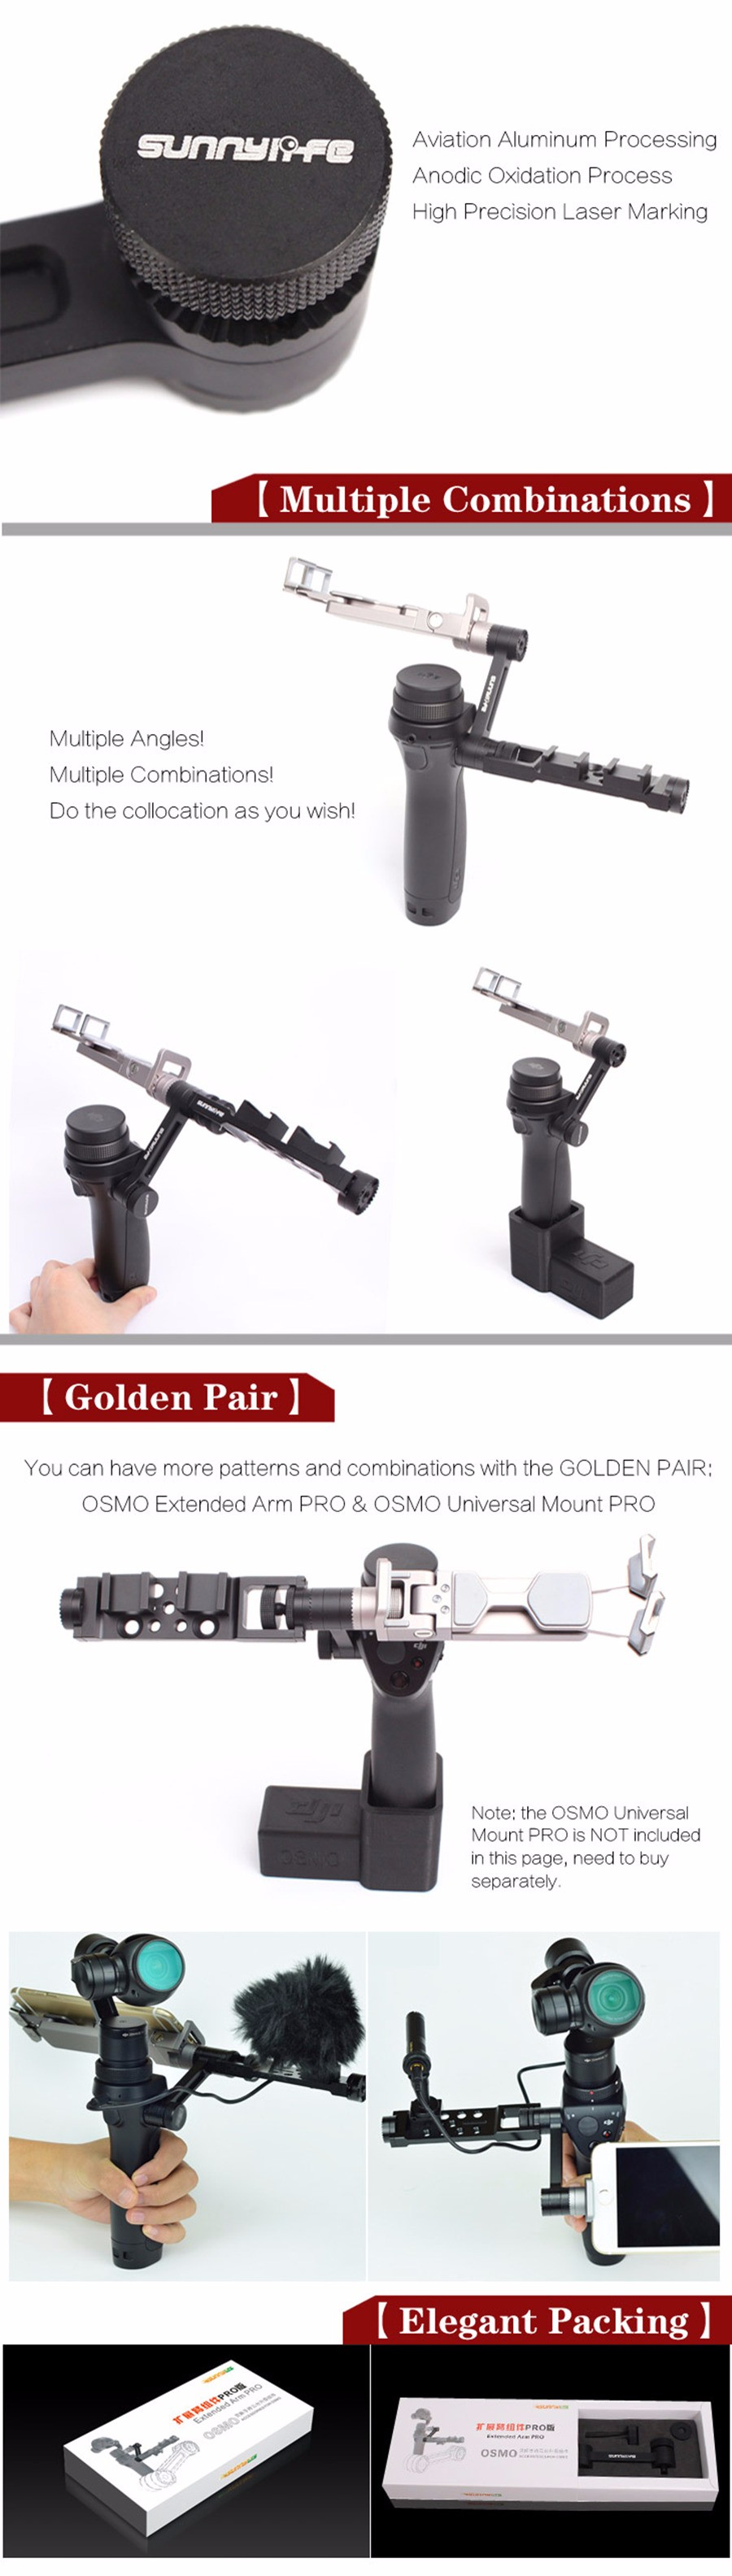 dji osmo accessories CNC Aluminum Pro Version Universal Frame Mount & Extended Arm for DJI OSMO DJI Handheld Gimbal Accessories